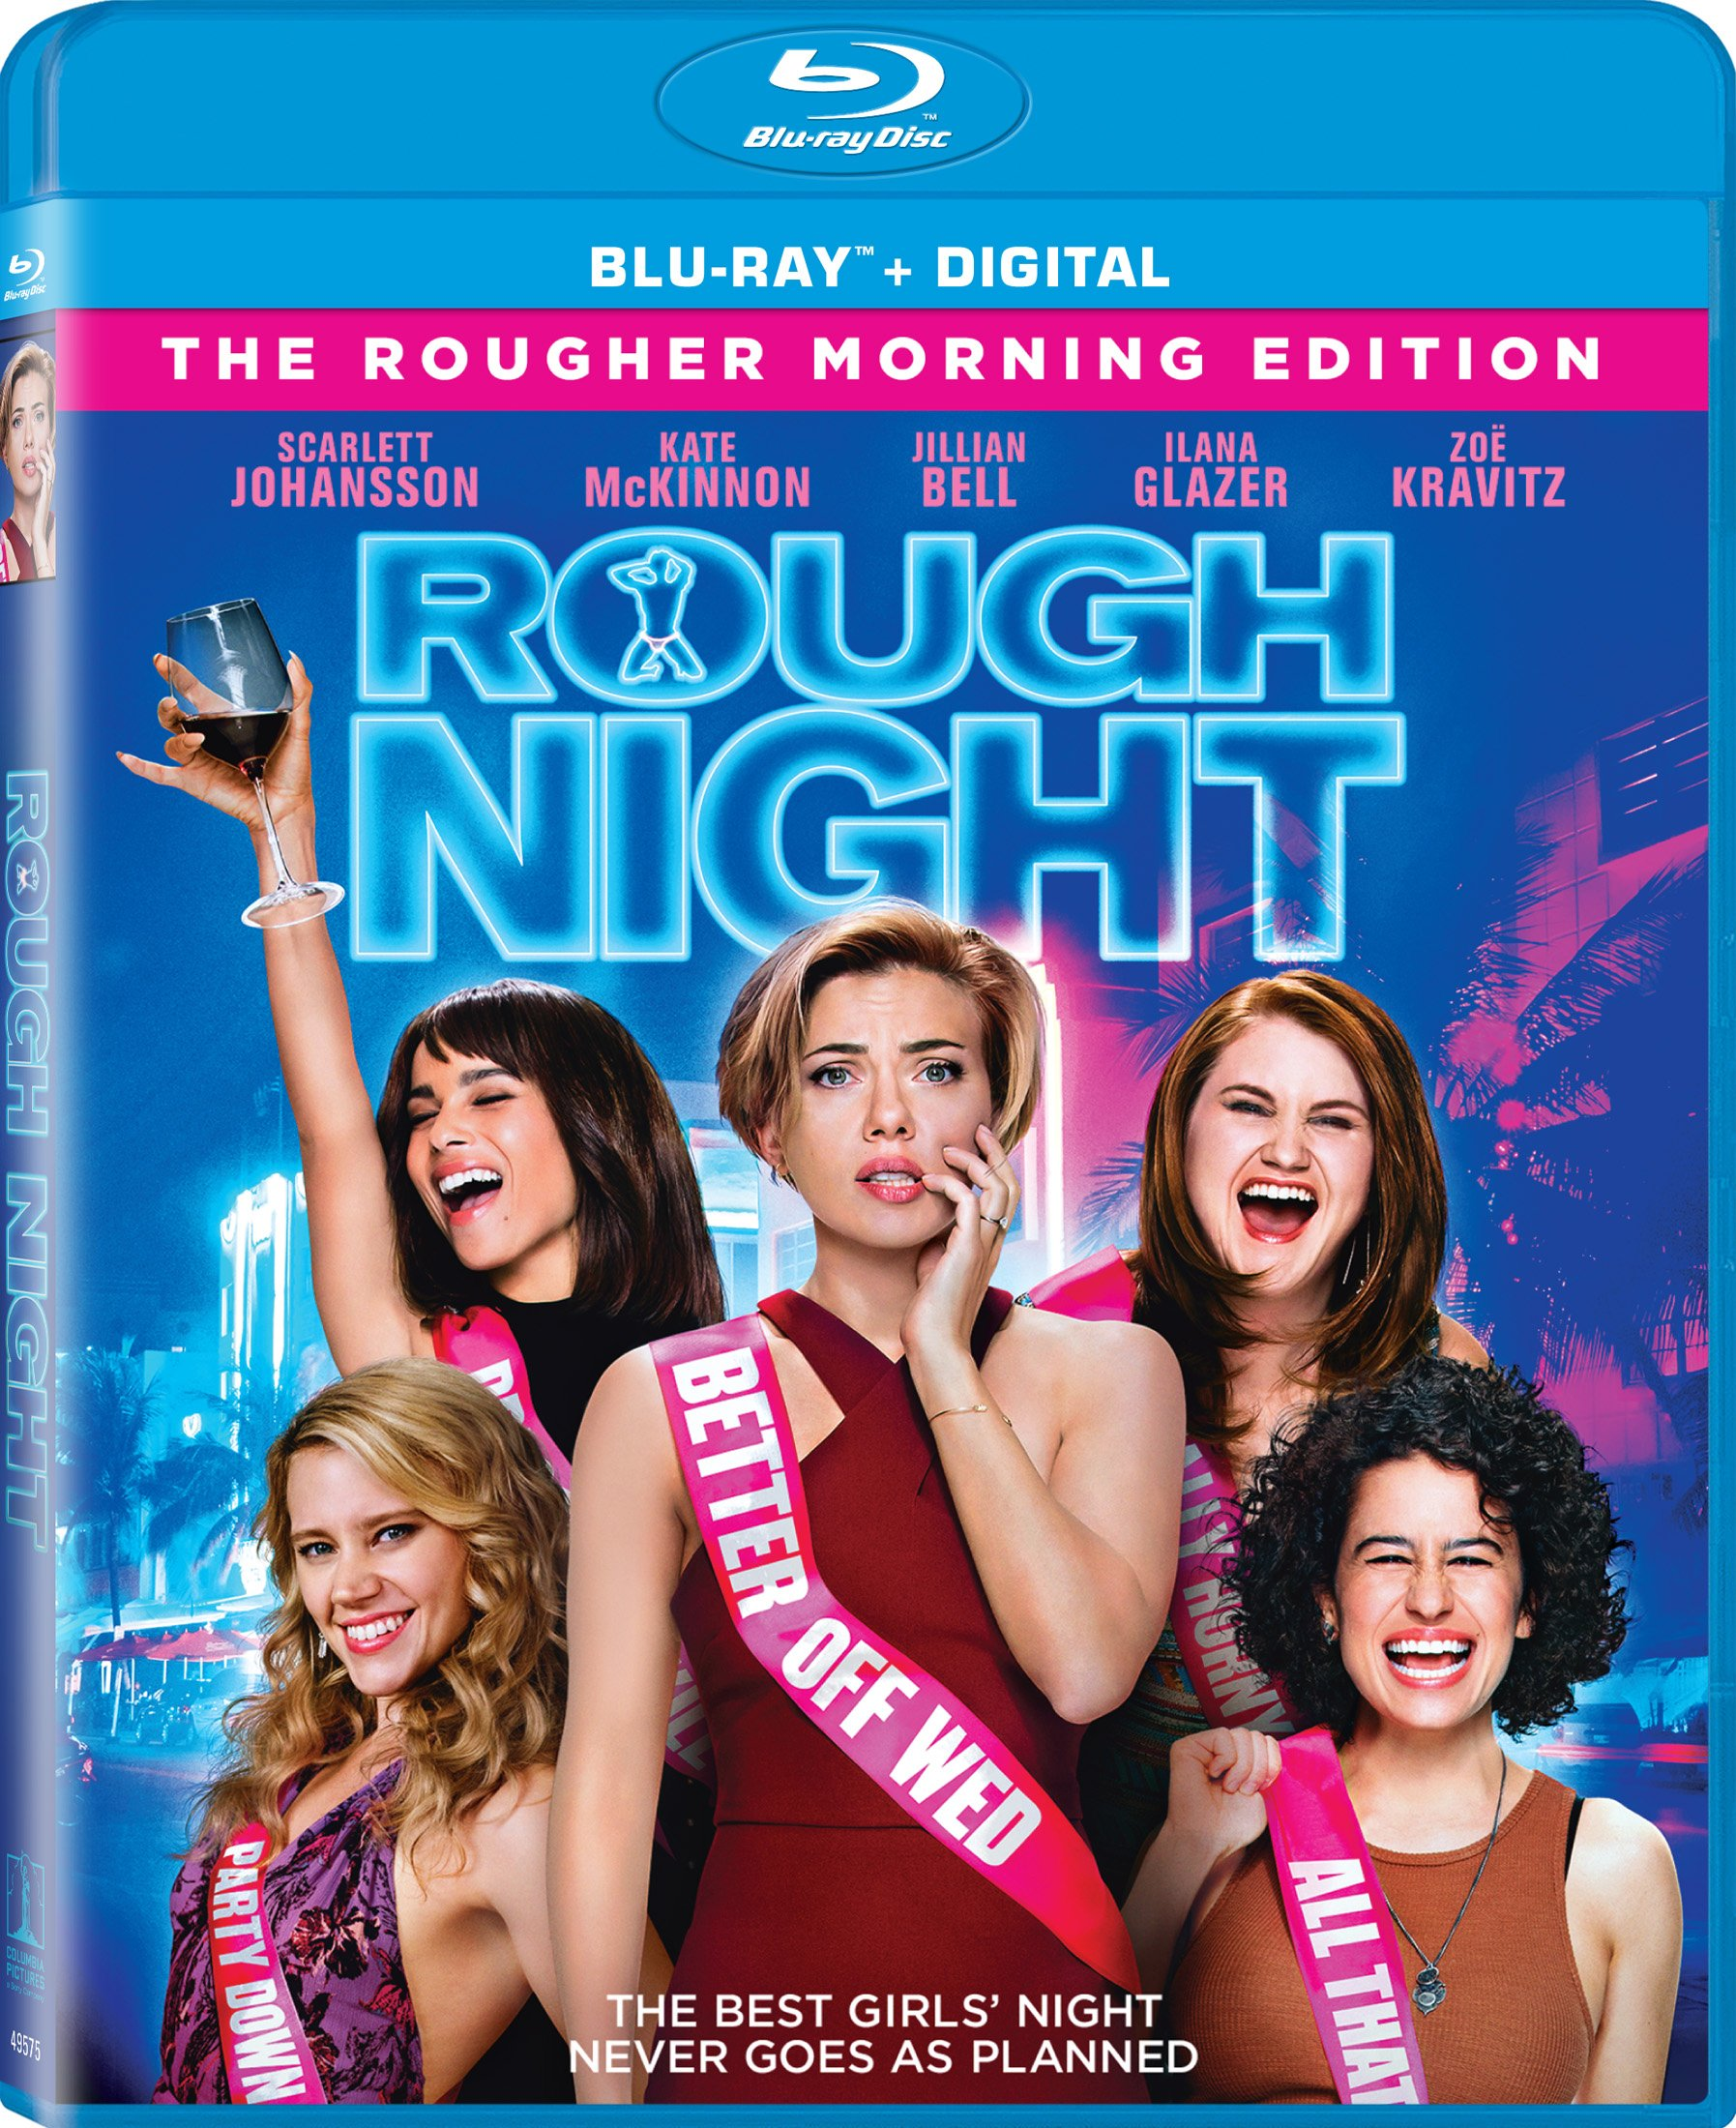 Blu-ray : Rough Night (Ultraviolet Digital Copy, Widescreen, , Dubbed, Dolby)